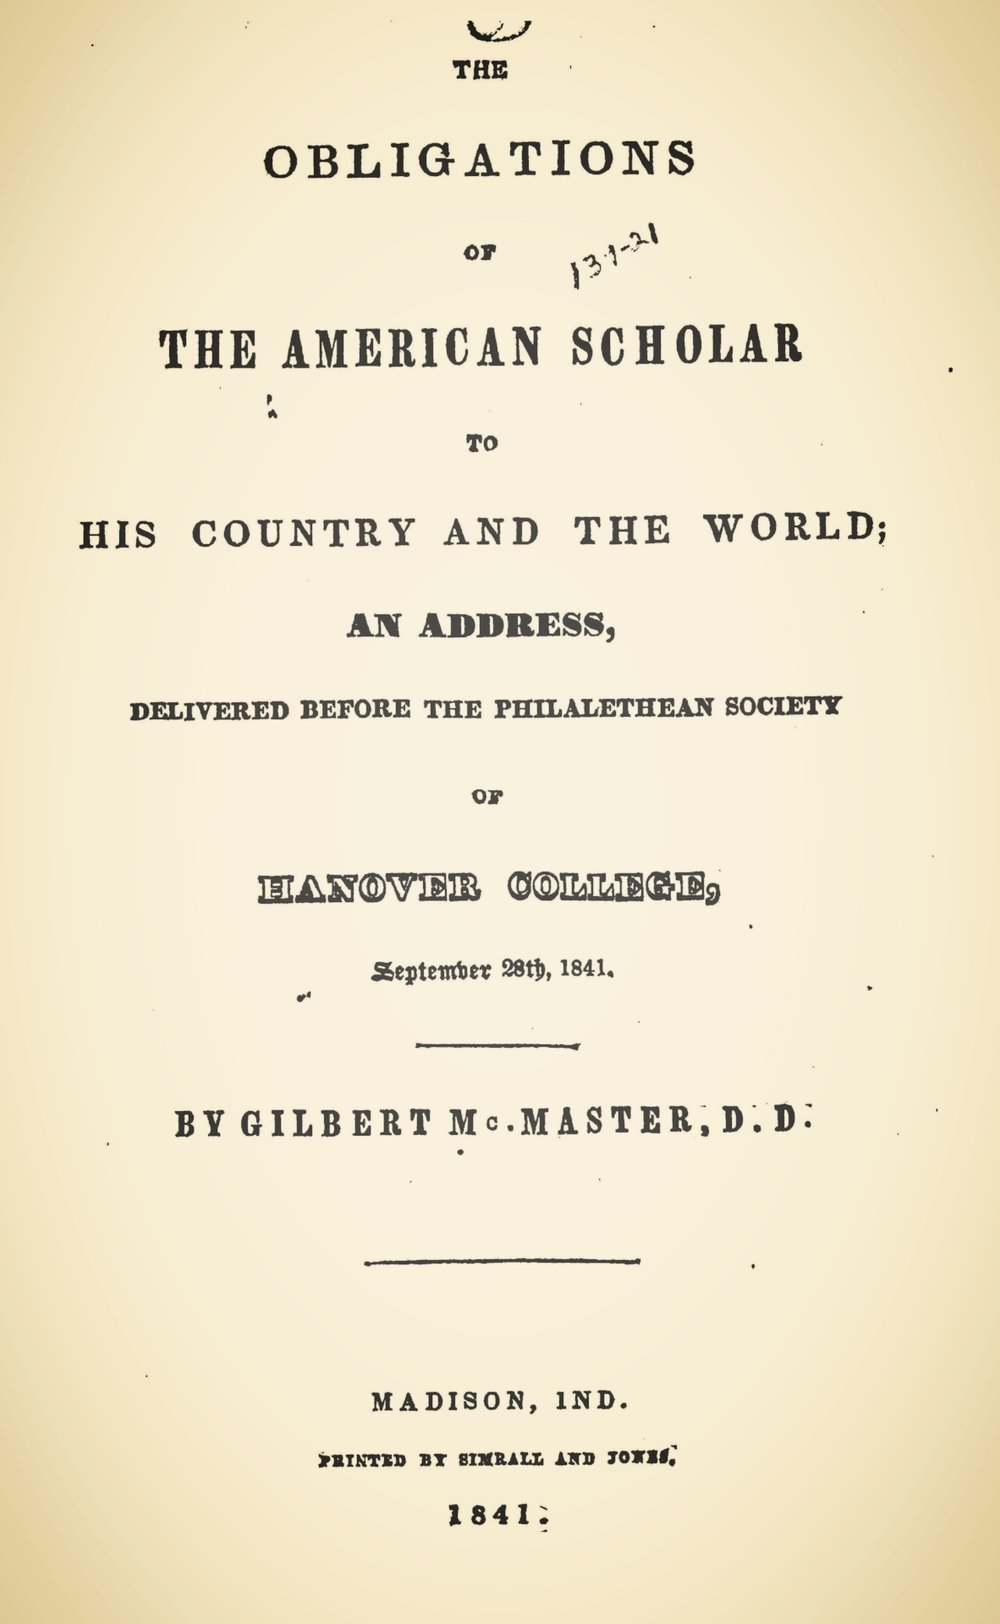 McMaster, Gilbert, The Obligations of the American Scholar to His Country and the World.jpg